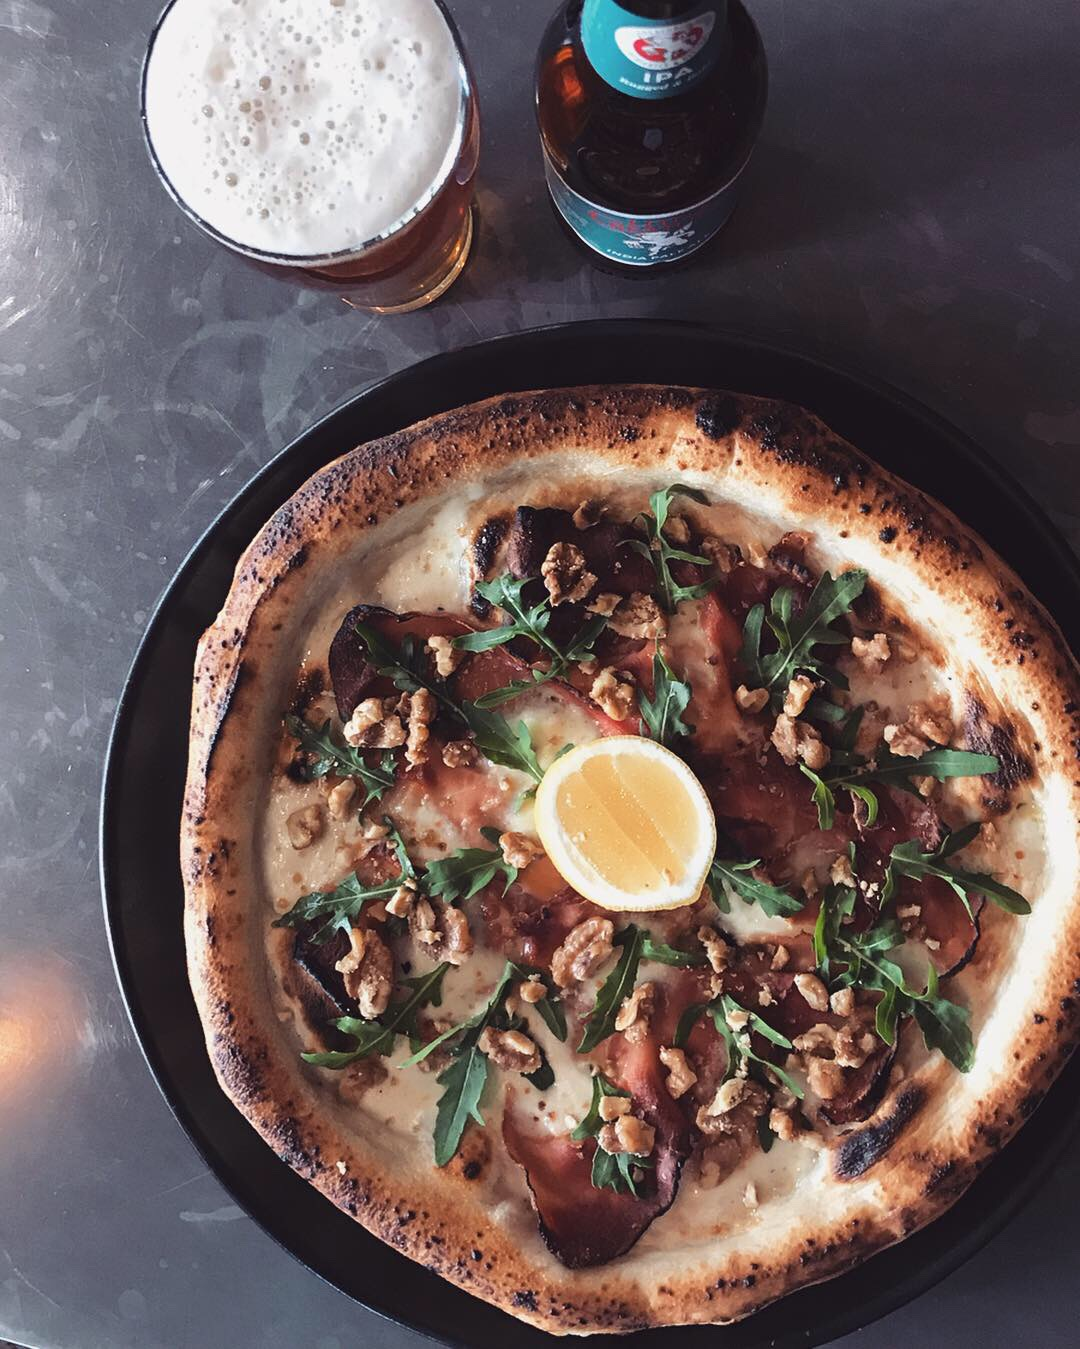 27 March - 2 April - White base of fiordilatte and taleggio cheese, smoked speck, candied walnuts, rocket.This salty pizza topped with ingredients typical of the alpine regions of Italy is perfectly matched with a refreshing yet robust Little Creatures IPA.